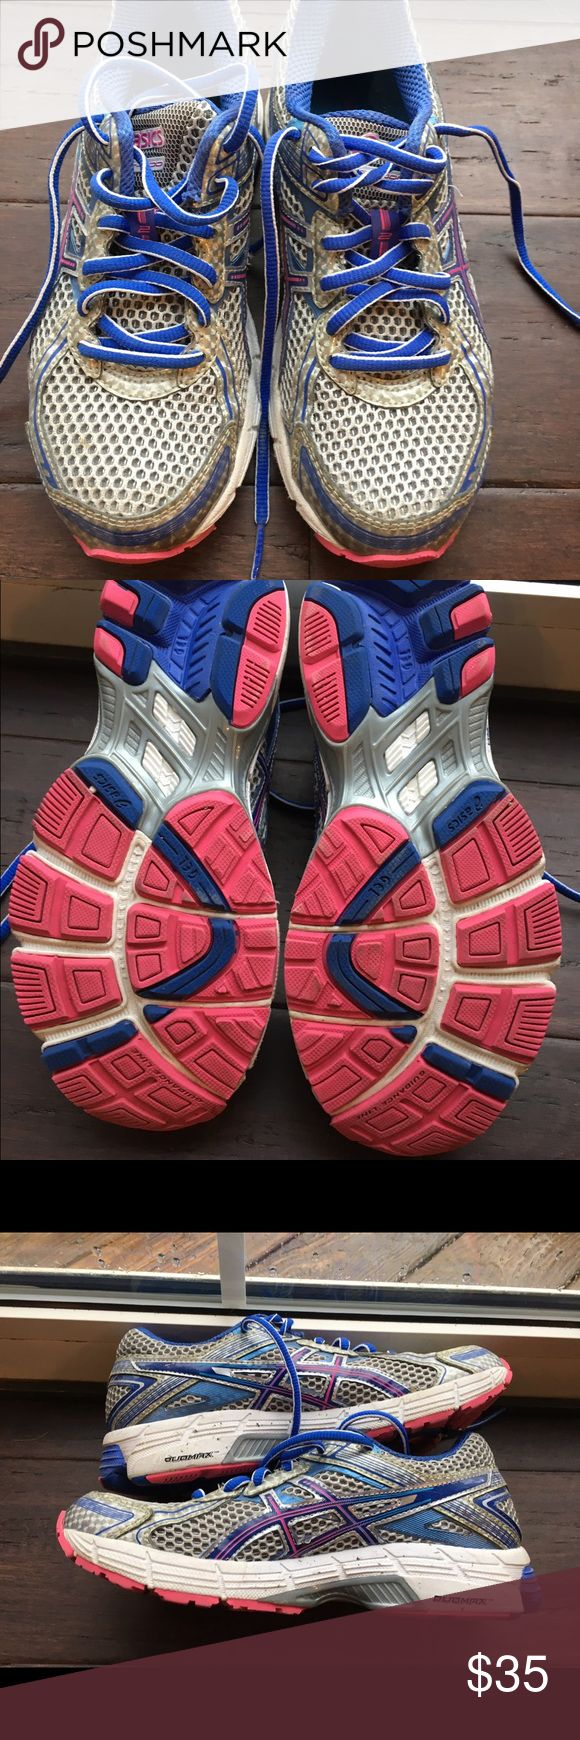 Asics Gel running sneakers Asics gel running sneaks in good condition. Asics Shoes Sneakers